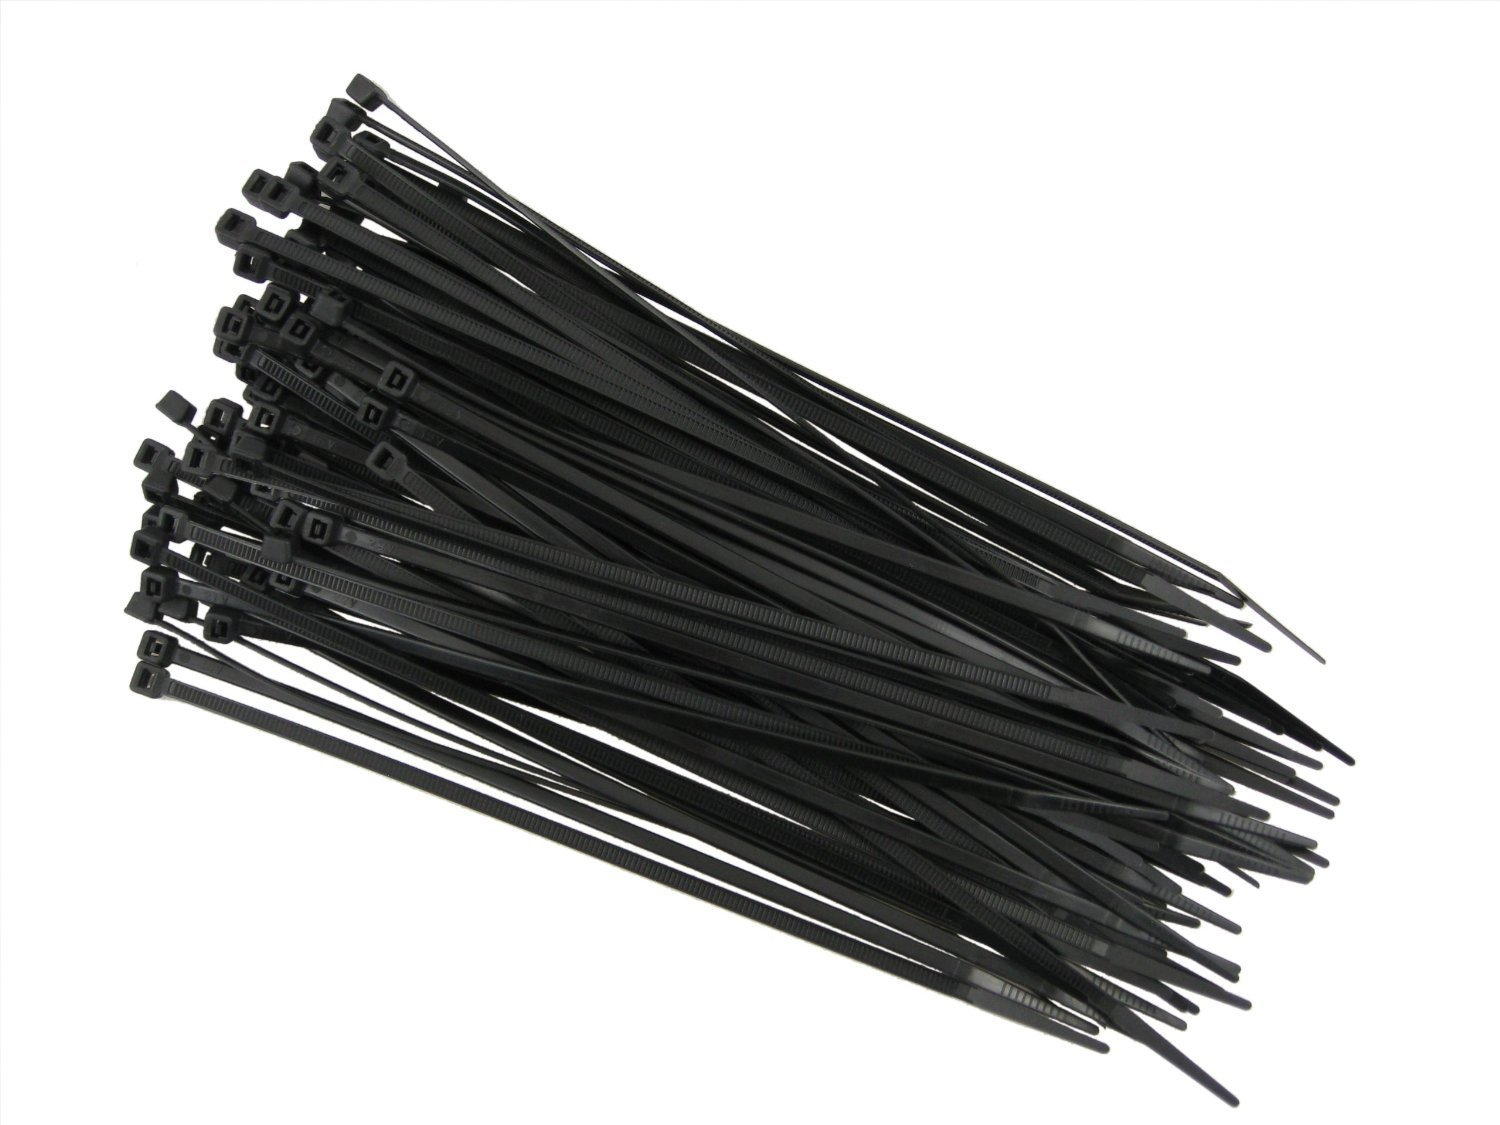 QualGear CT8 B 100 P Self Locking Cable Ties 14 Inch Black 100 Poly Bag